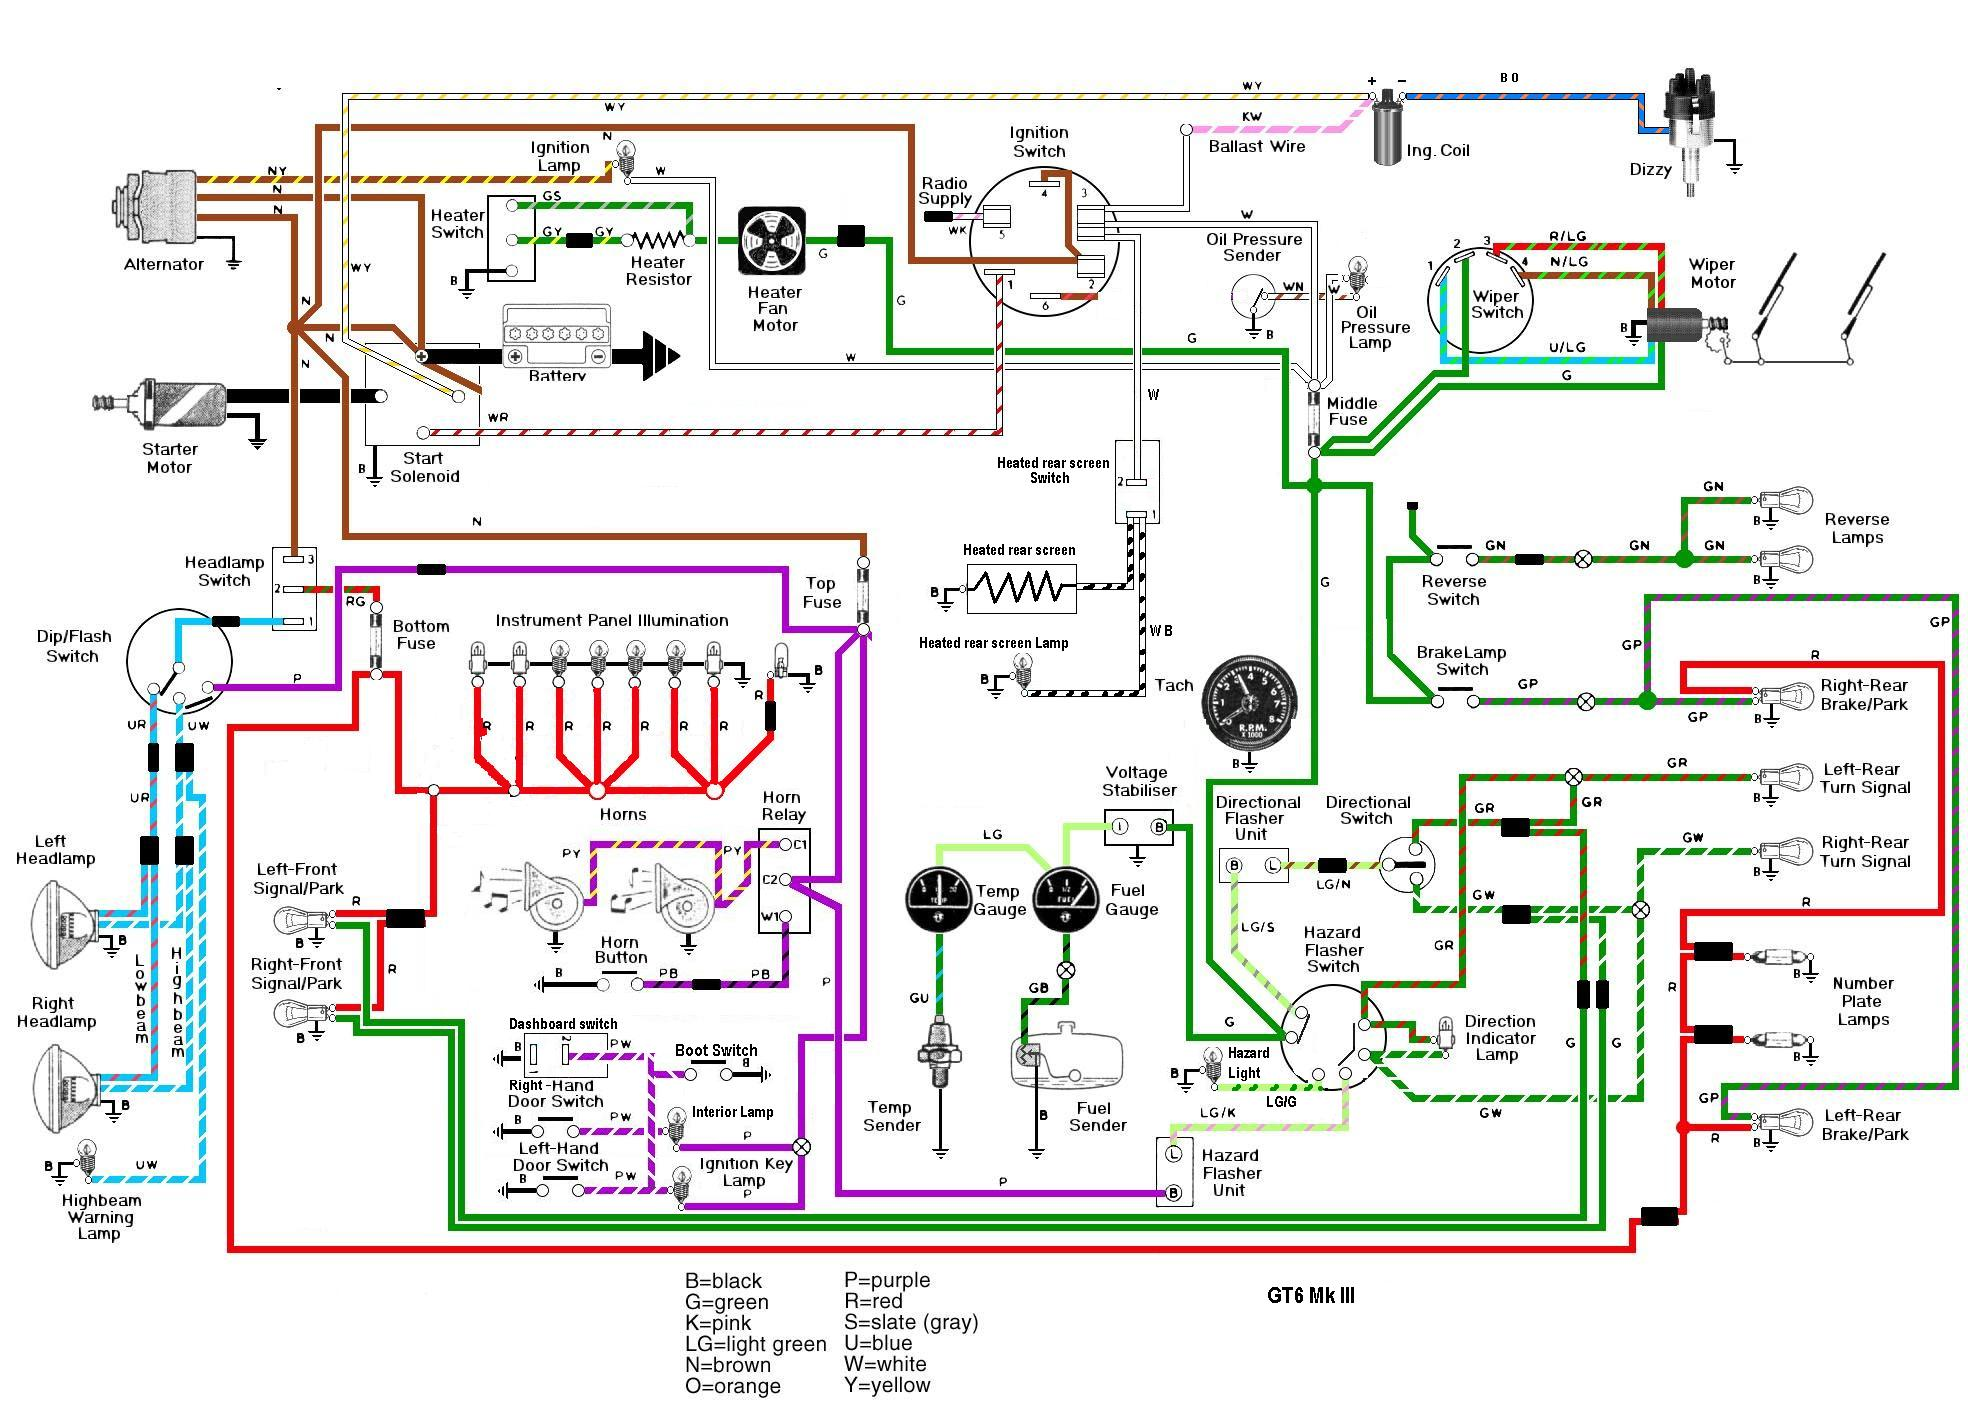 2002 Chevy Silverado Wiring Diagram additionally Wire Color Code For Pioneer Car Stereo Car2bstereo2bmemory2bwire2bwiring2bharness2bcolor2bcode2bdiagram   Wiring Diagram likewise Kenwood 4 Channel Car   Wiring Diagrams moreover 76920 Swirl Control Solenoid Valve Nissan Pathfinder moreover Pioneer Car Stereo Wiring Diagram Free. on pioneer wiring diagrams automotive